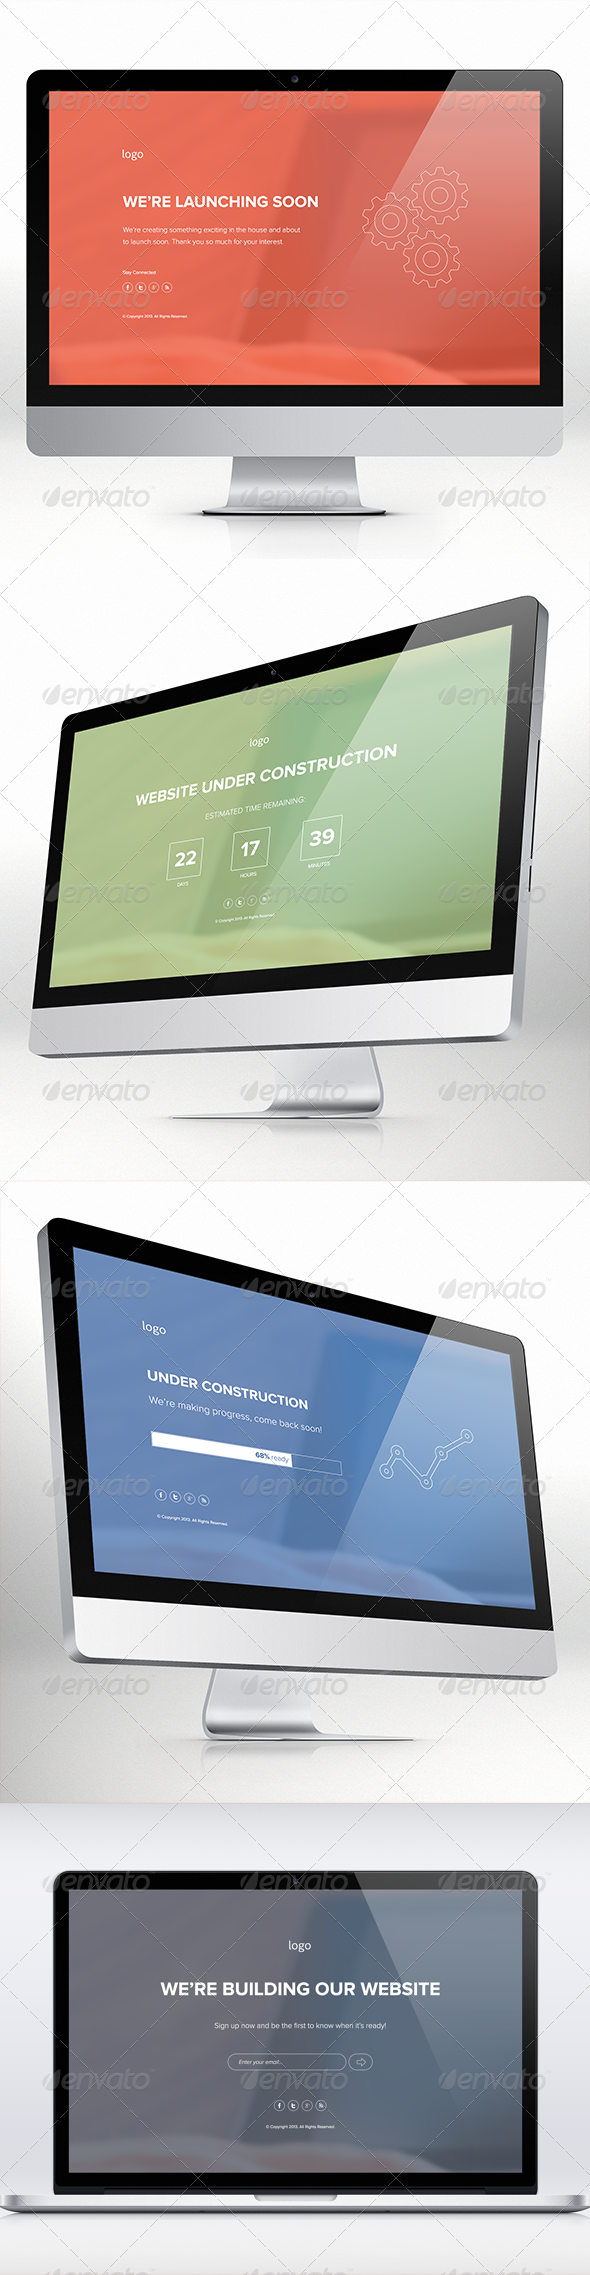 GraphicRiver Under Construction & Launching Soon Templates 5385589